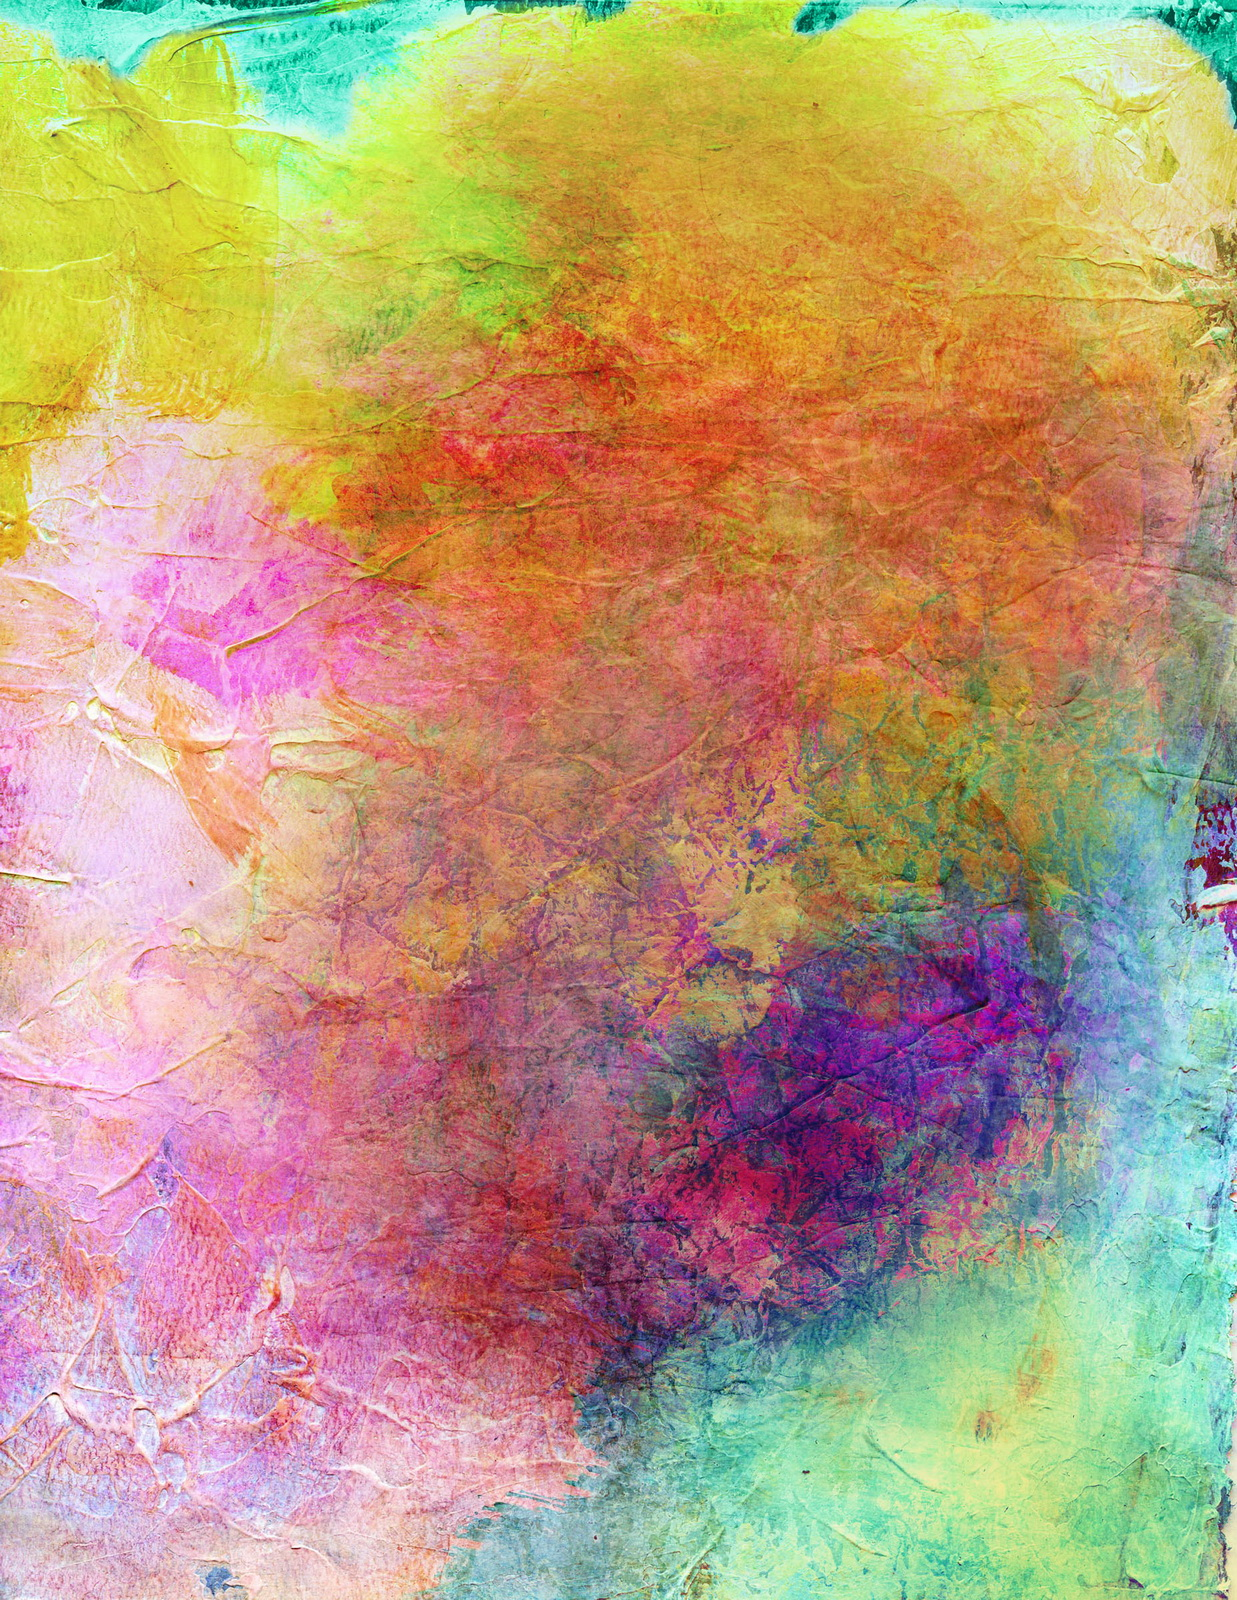 Abstraction paint texture paints background for Texture paint images